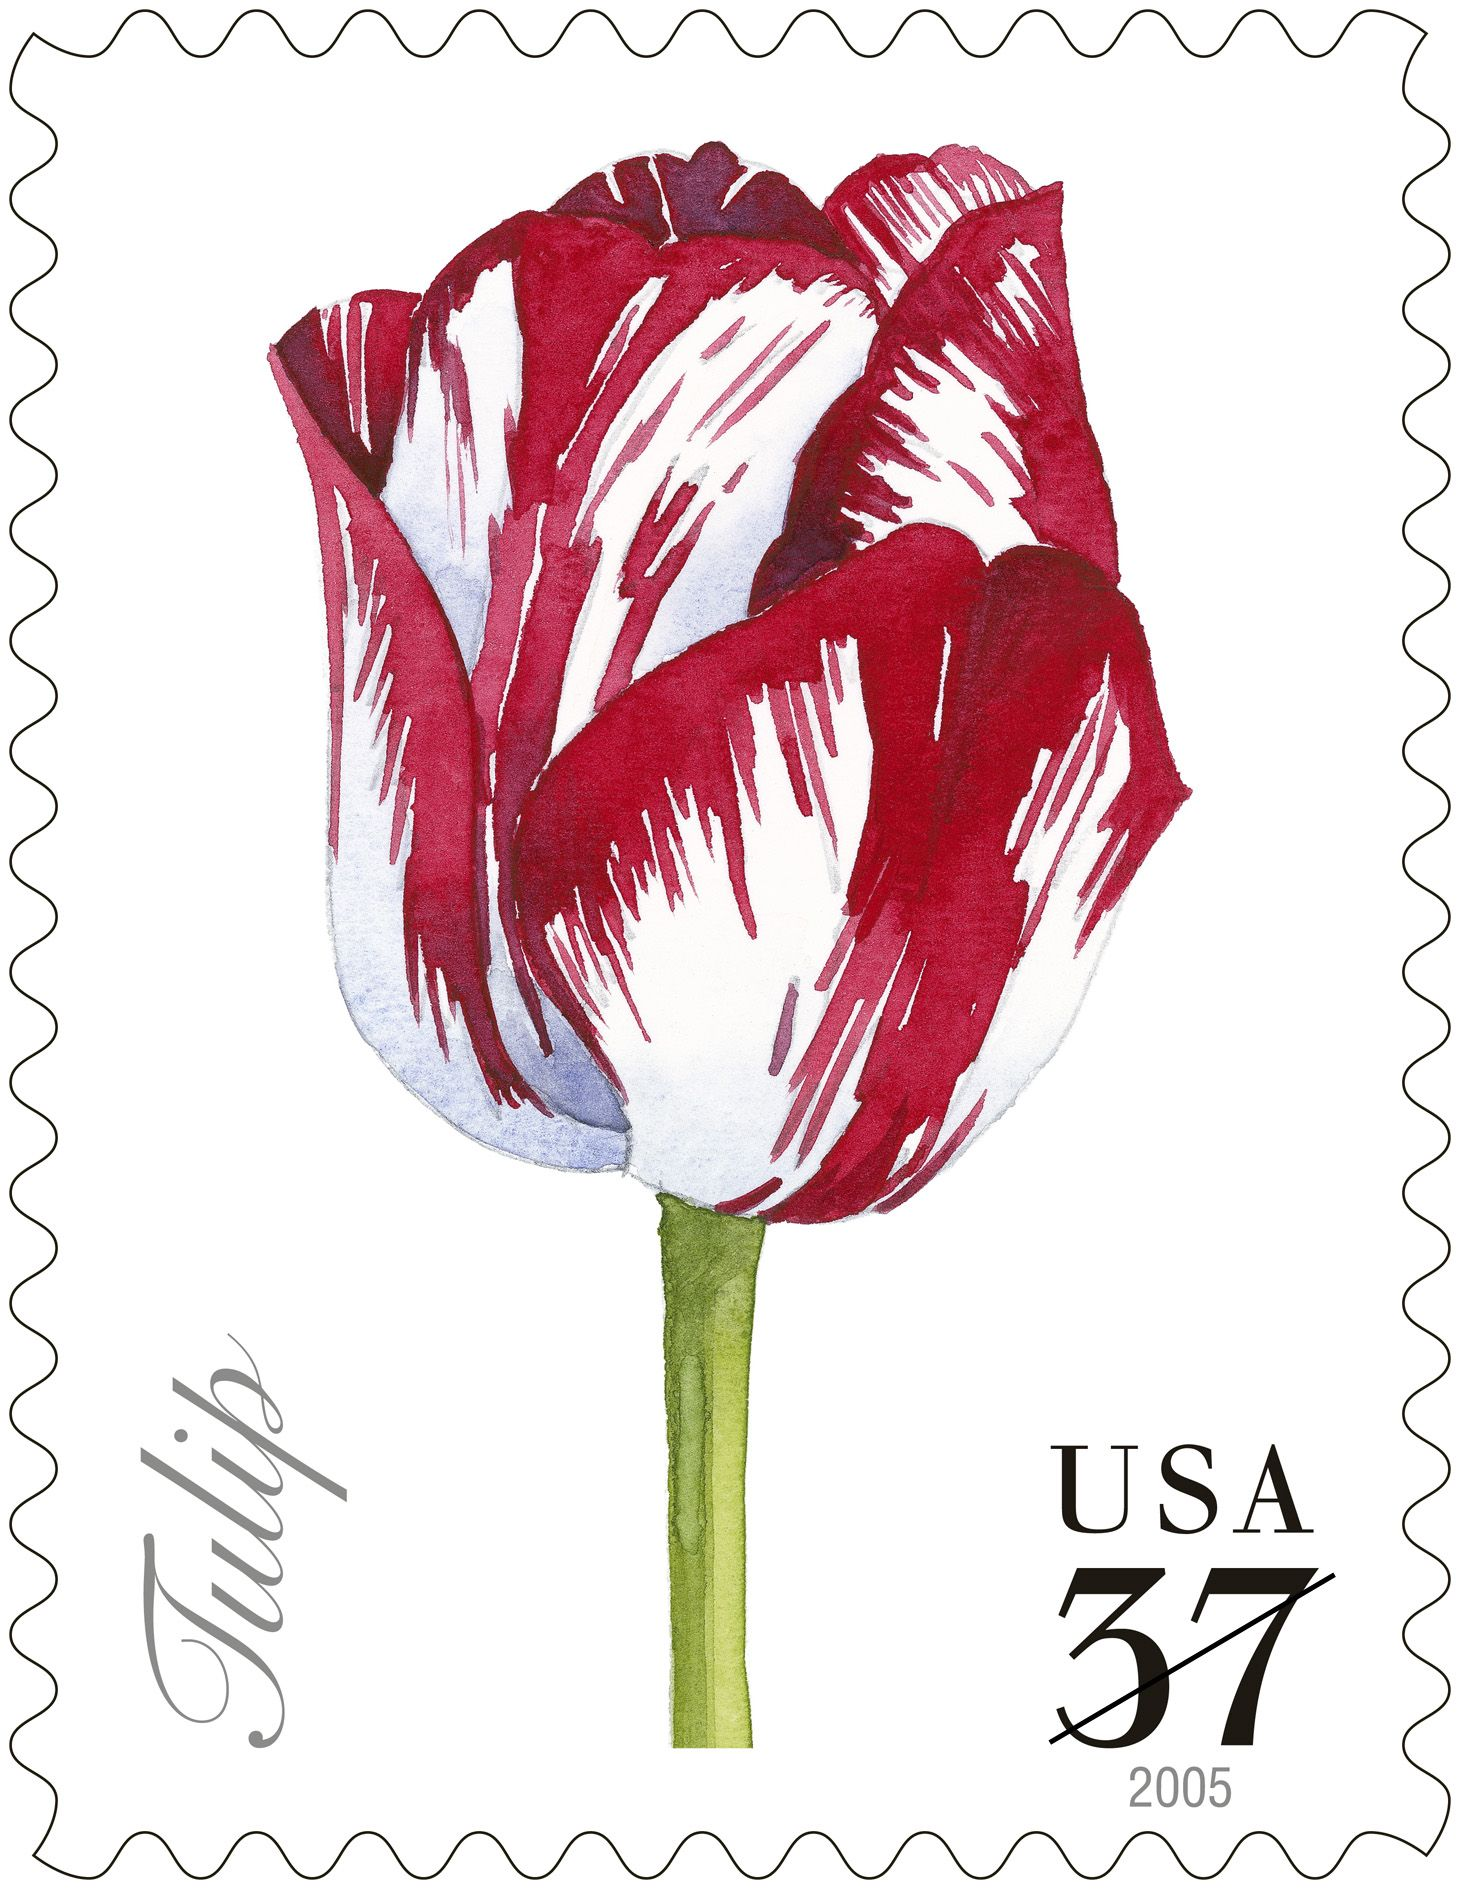 Pin by Elaine Nasser ☆ on STAMPS | Pinterest | Stamps and American ...